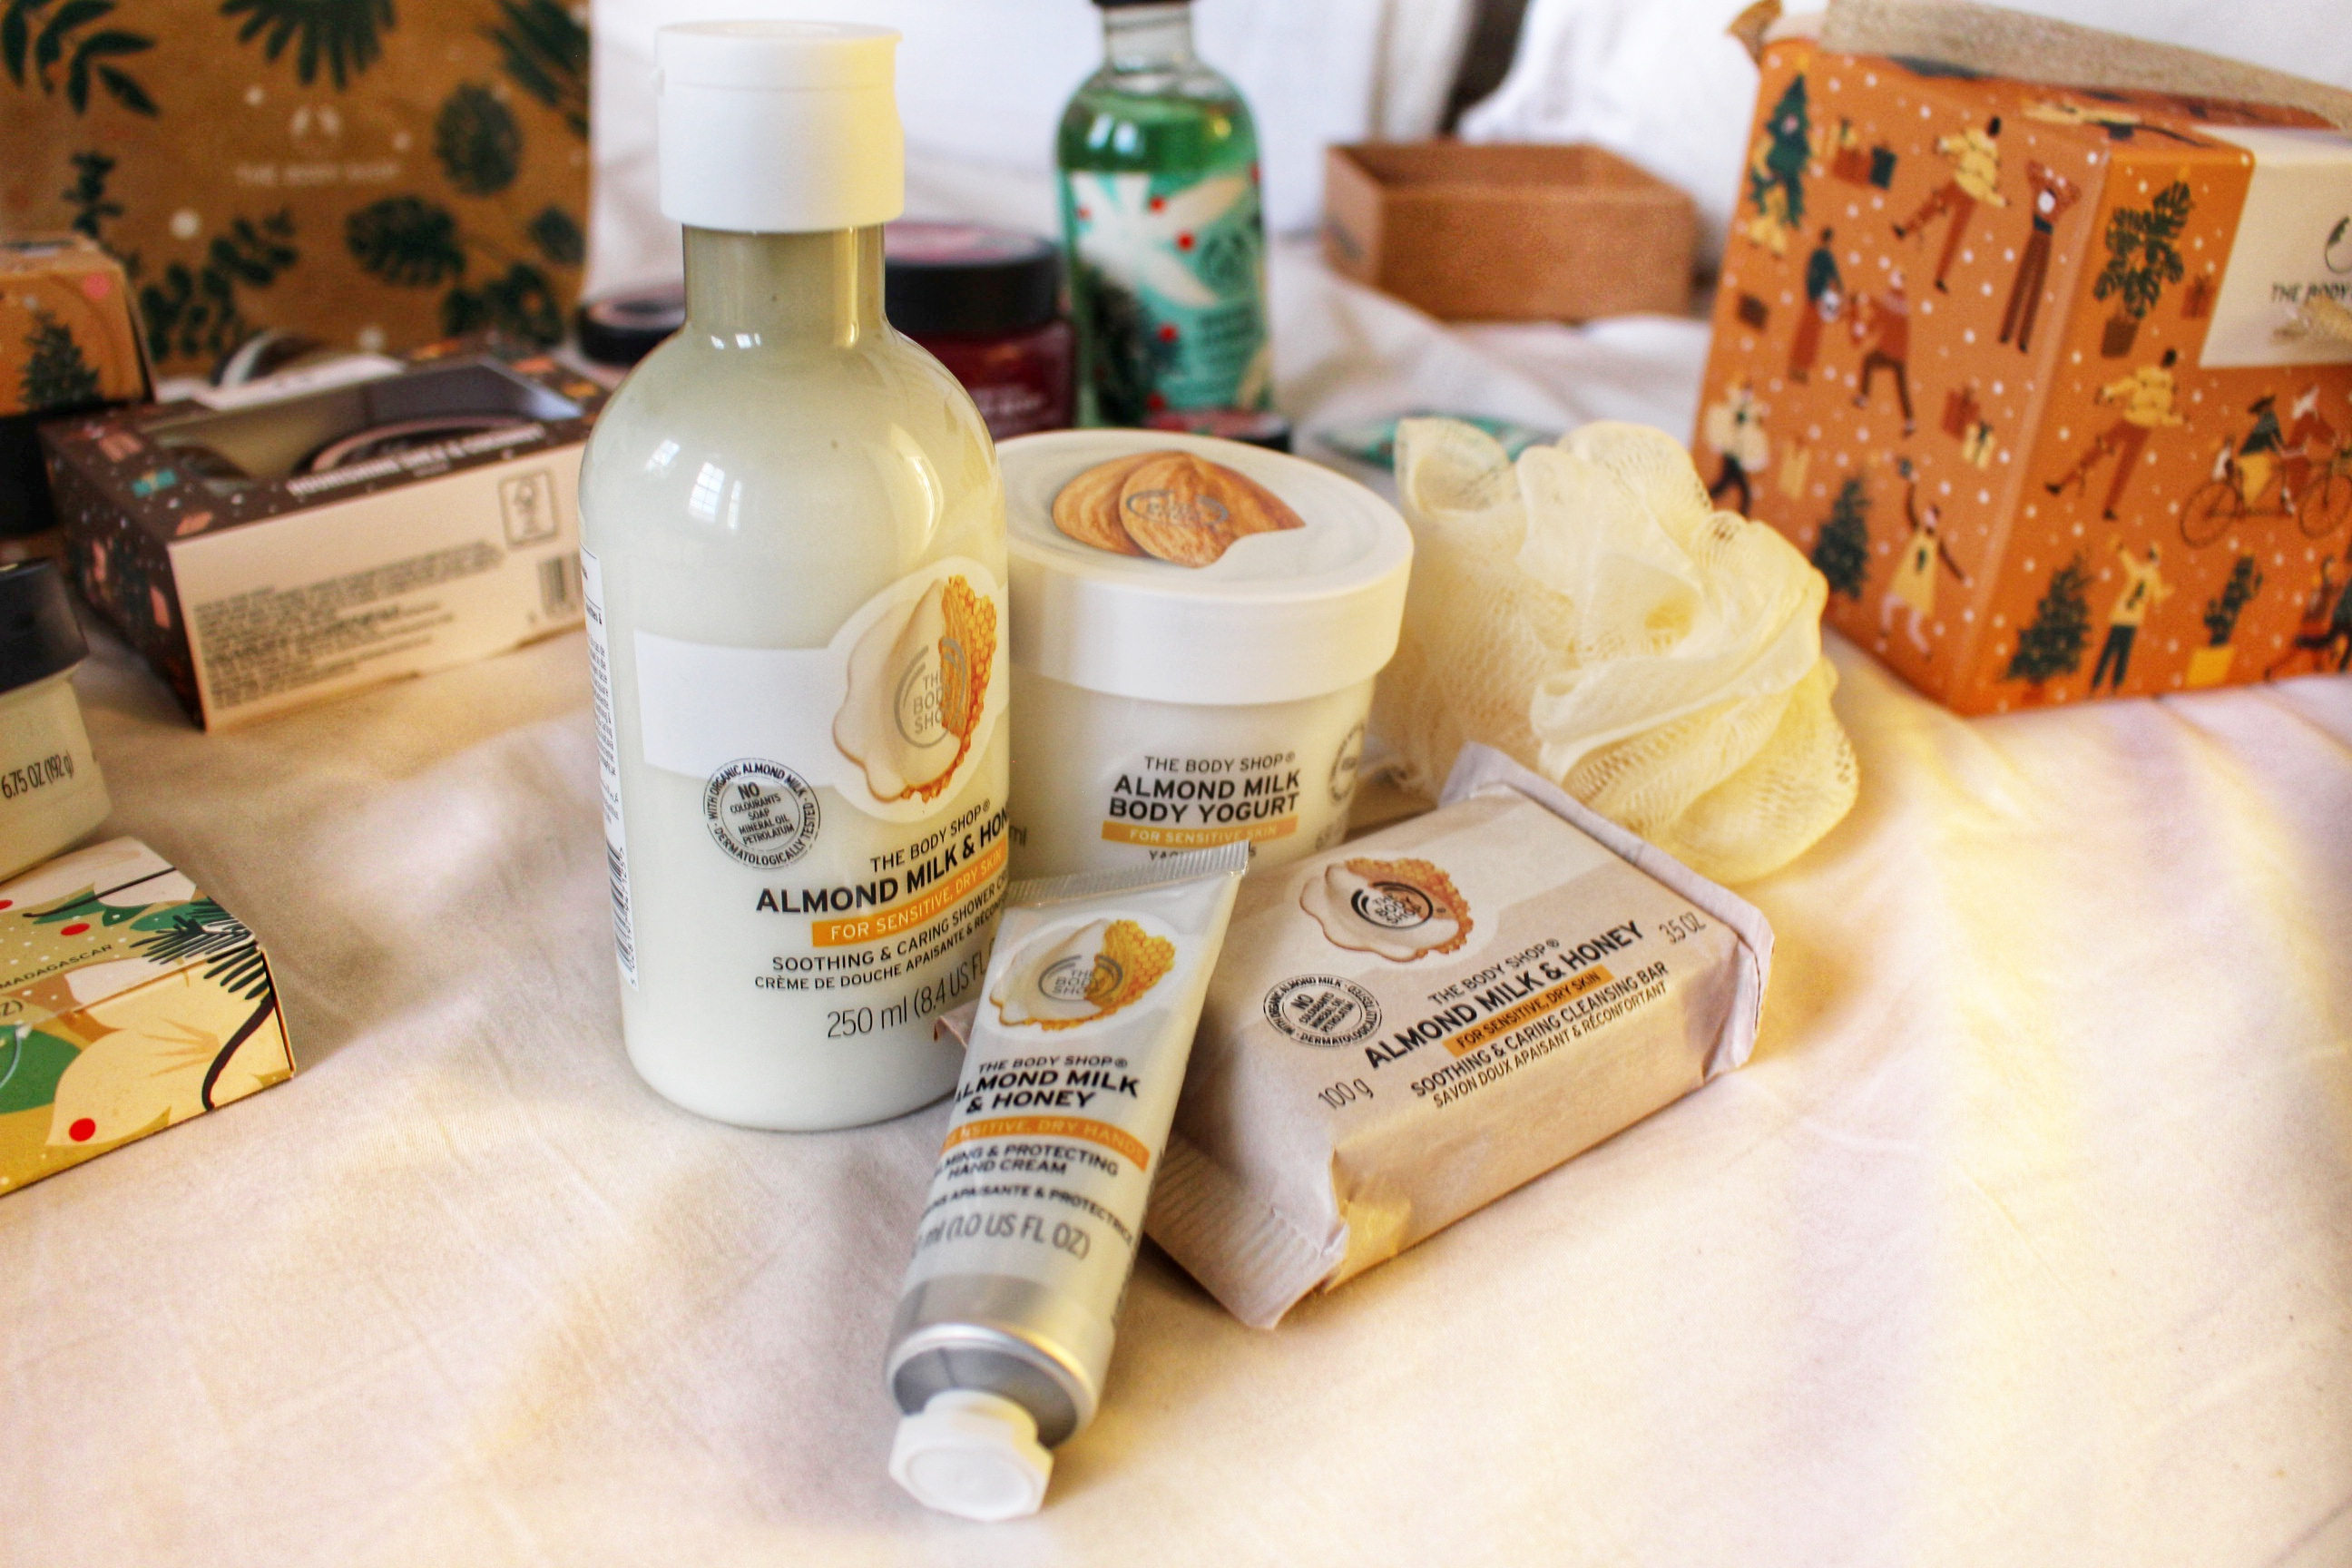 soothing-almond-milk-little-gift-box-white-cream-almond-the-bodyshop-hair-grips-christmas-gift-guide-raychel-says